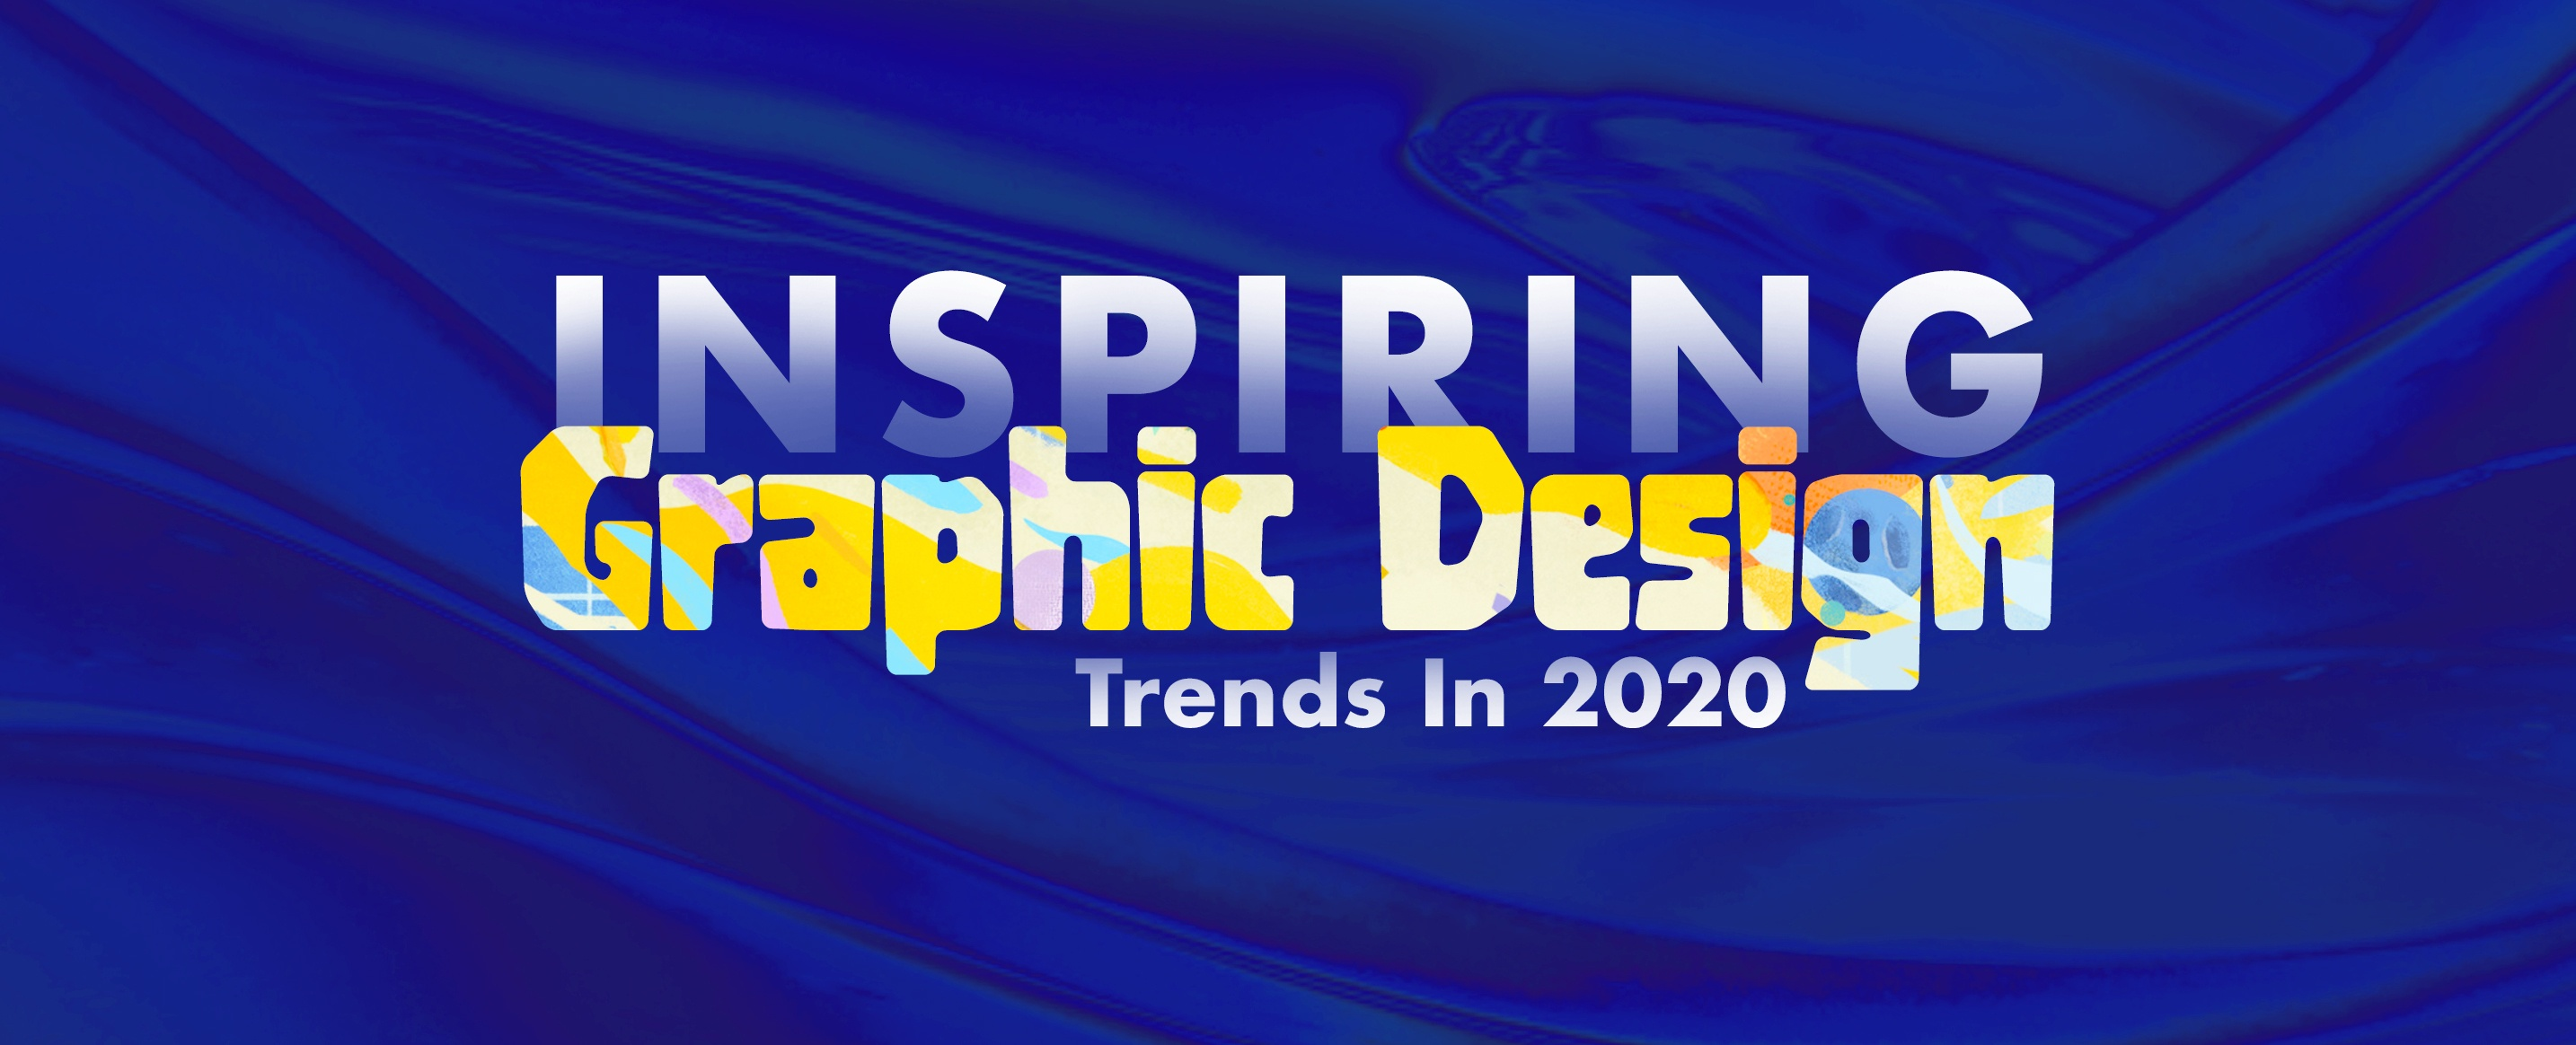 Inspiring-Graphic-Design-Trends-in-2020